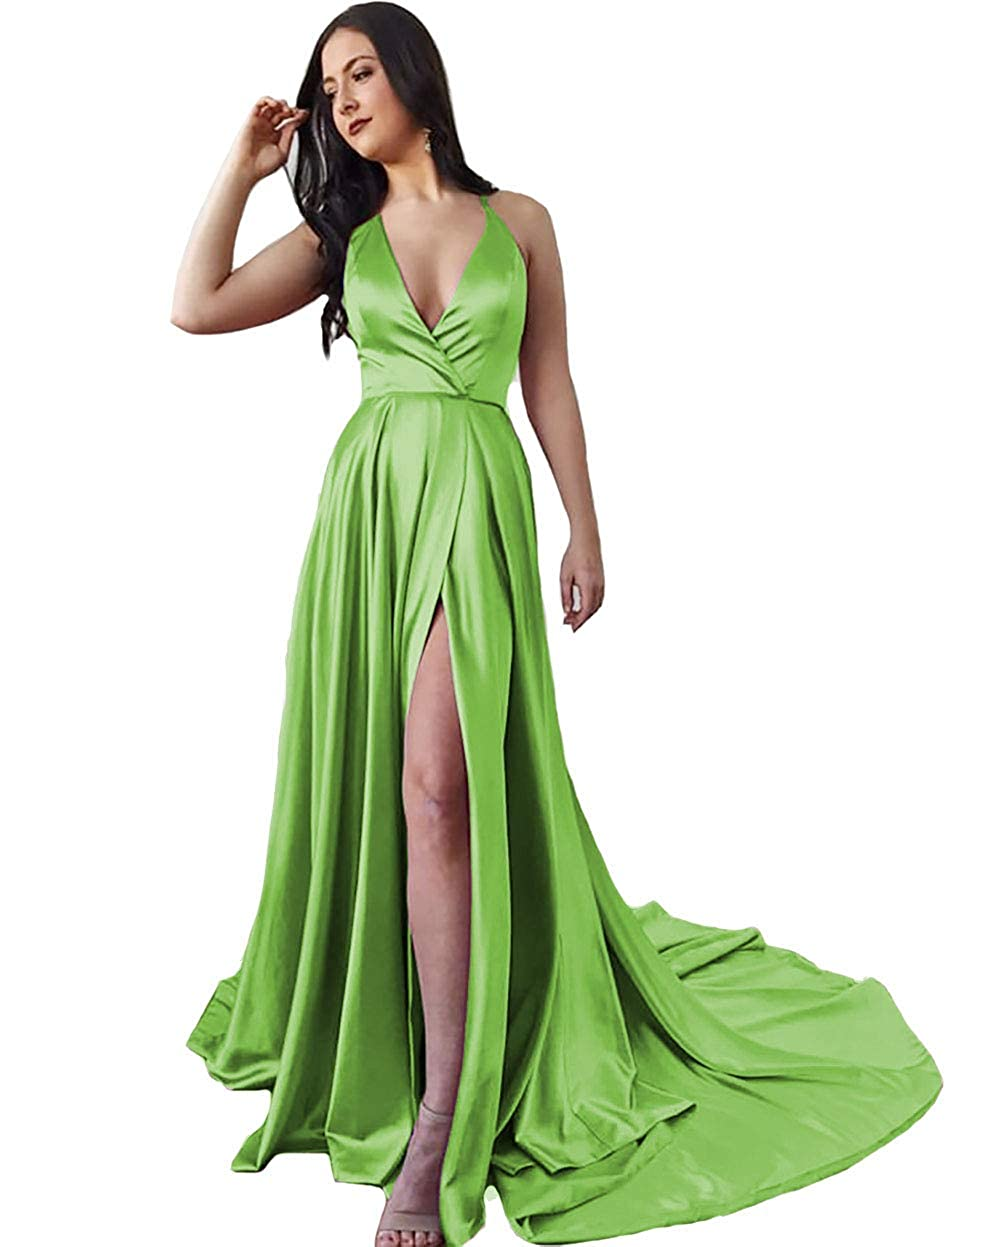 Green IVYPRECIOUS Women's Long Prom Dresses V Neck A Line with Side Split Evening Gowns